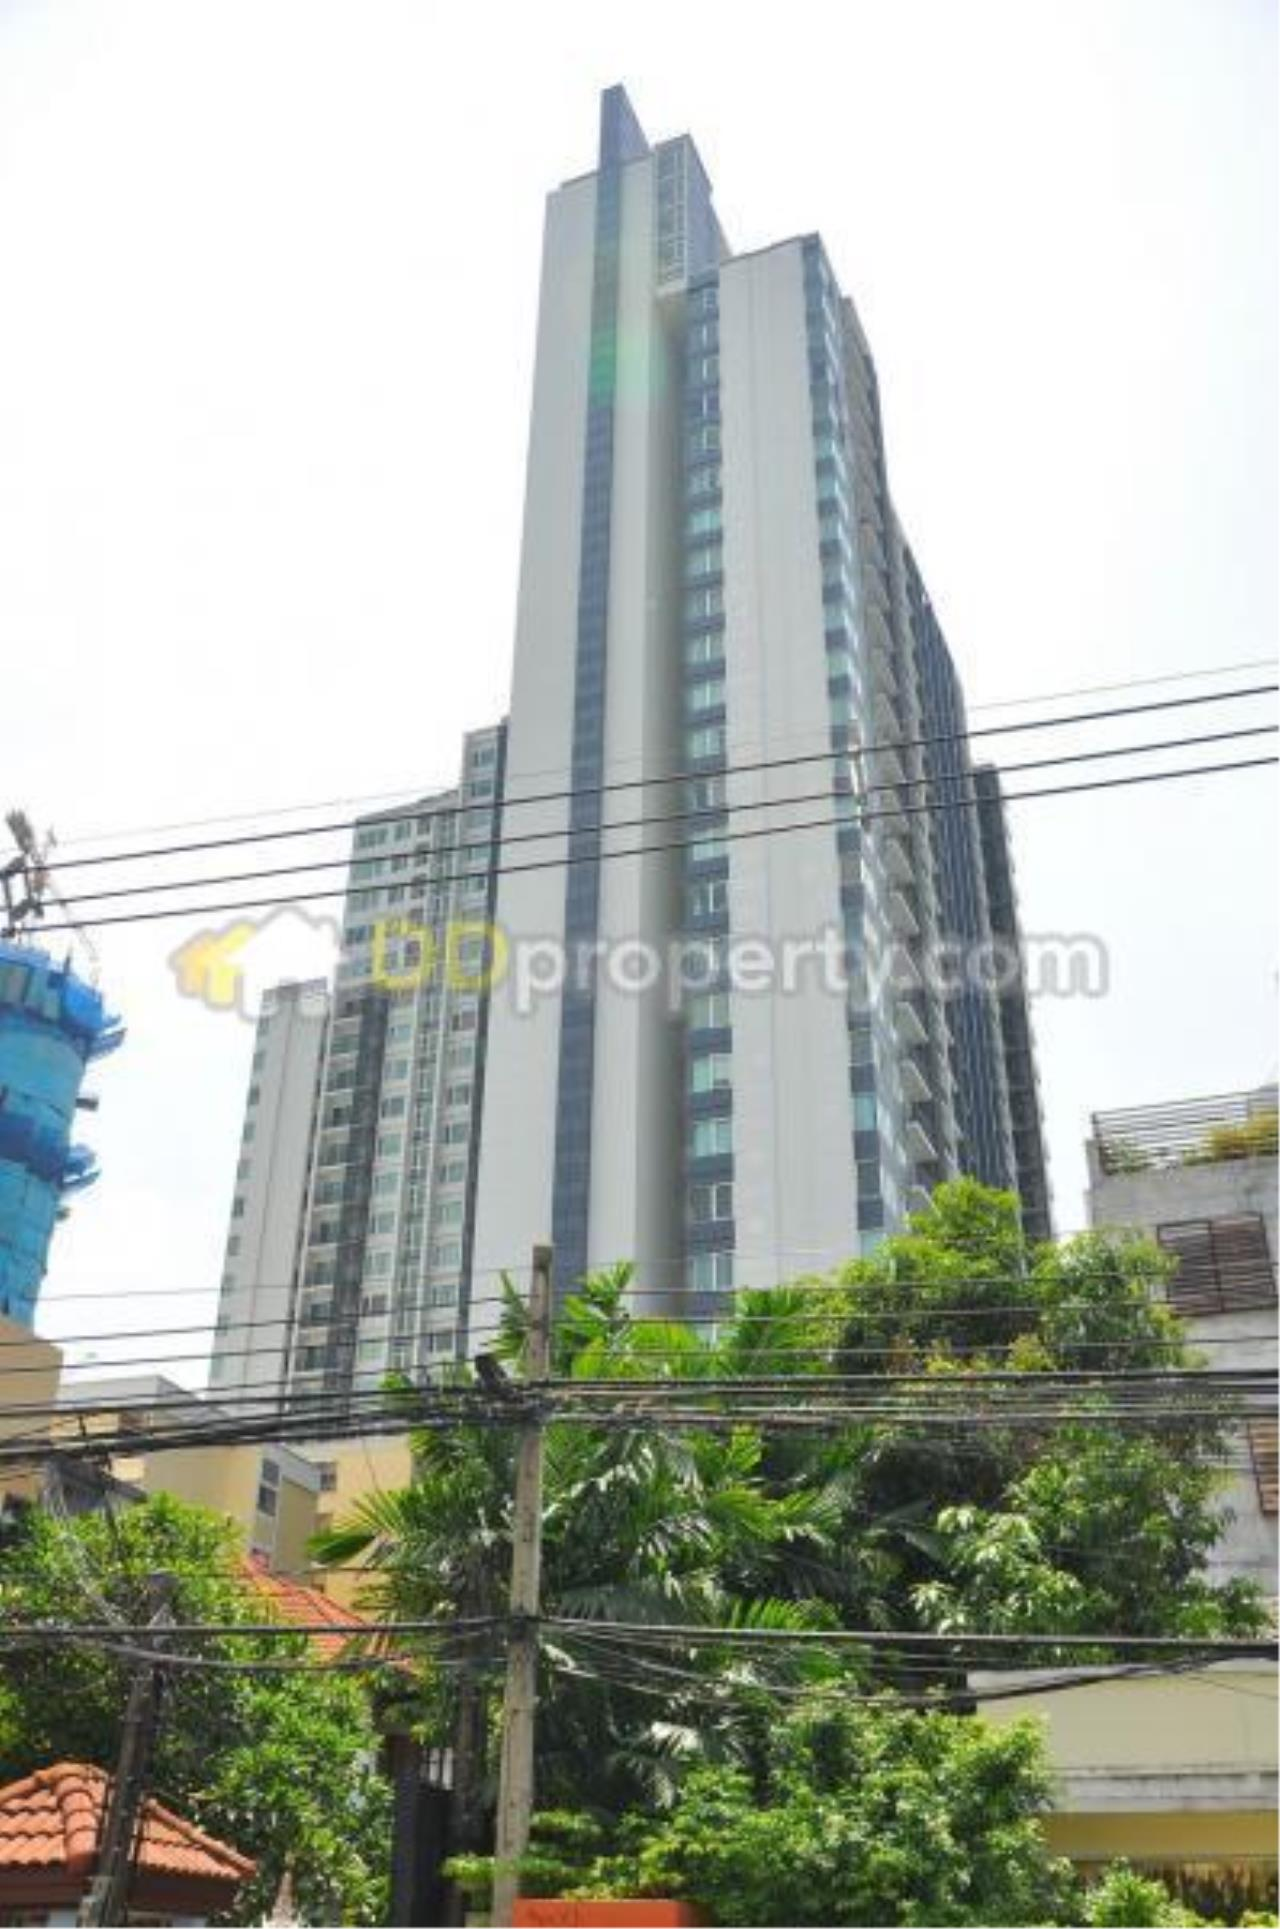 Quality Life Property Agency's R E N T ! SIRI AT SUKHUMVIT | 1 ROOM 1 BATH | 52 SQ. M 2